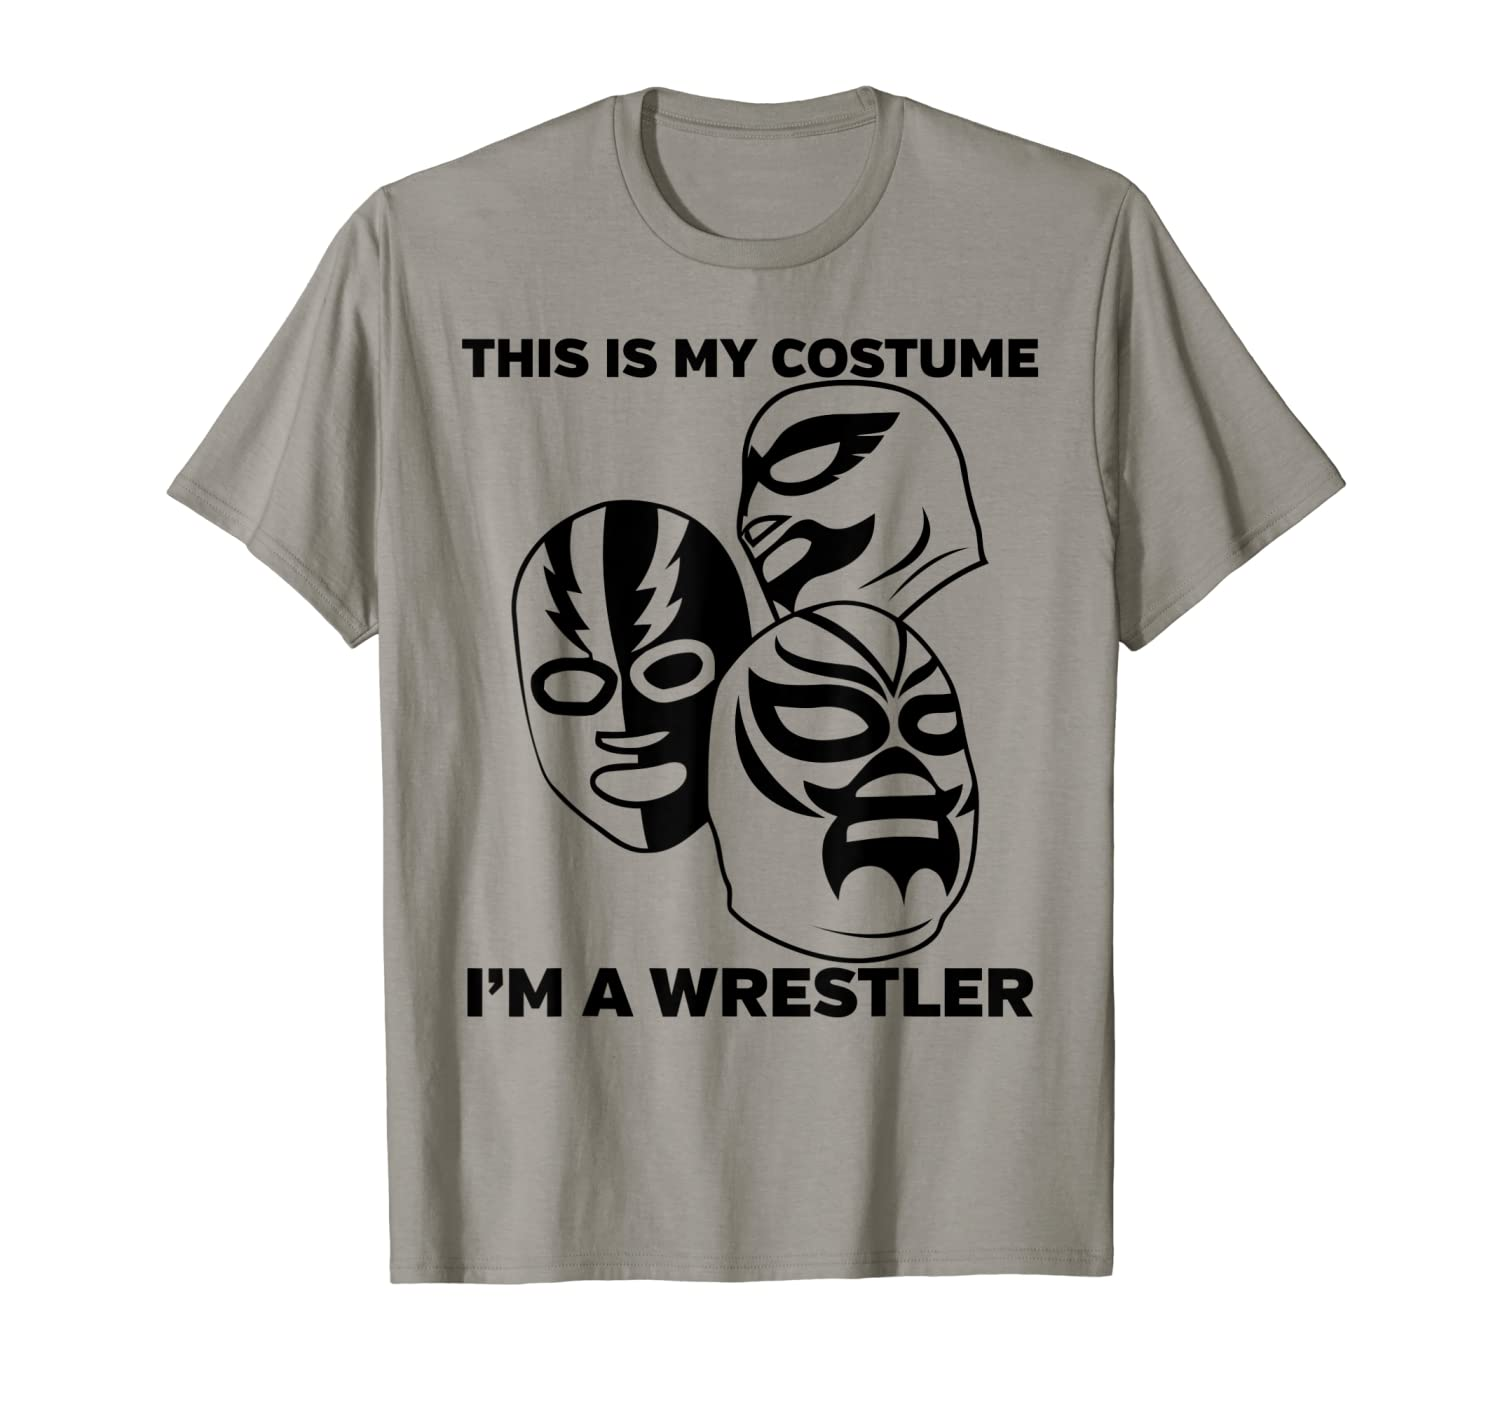 Wrestler Halloween Costume Tshirt